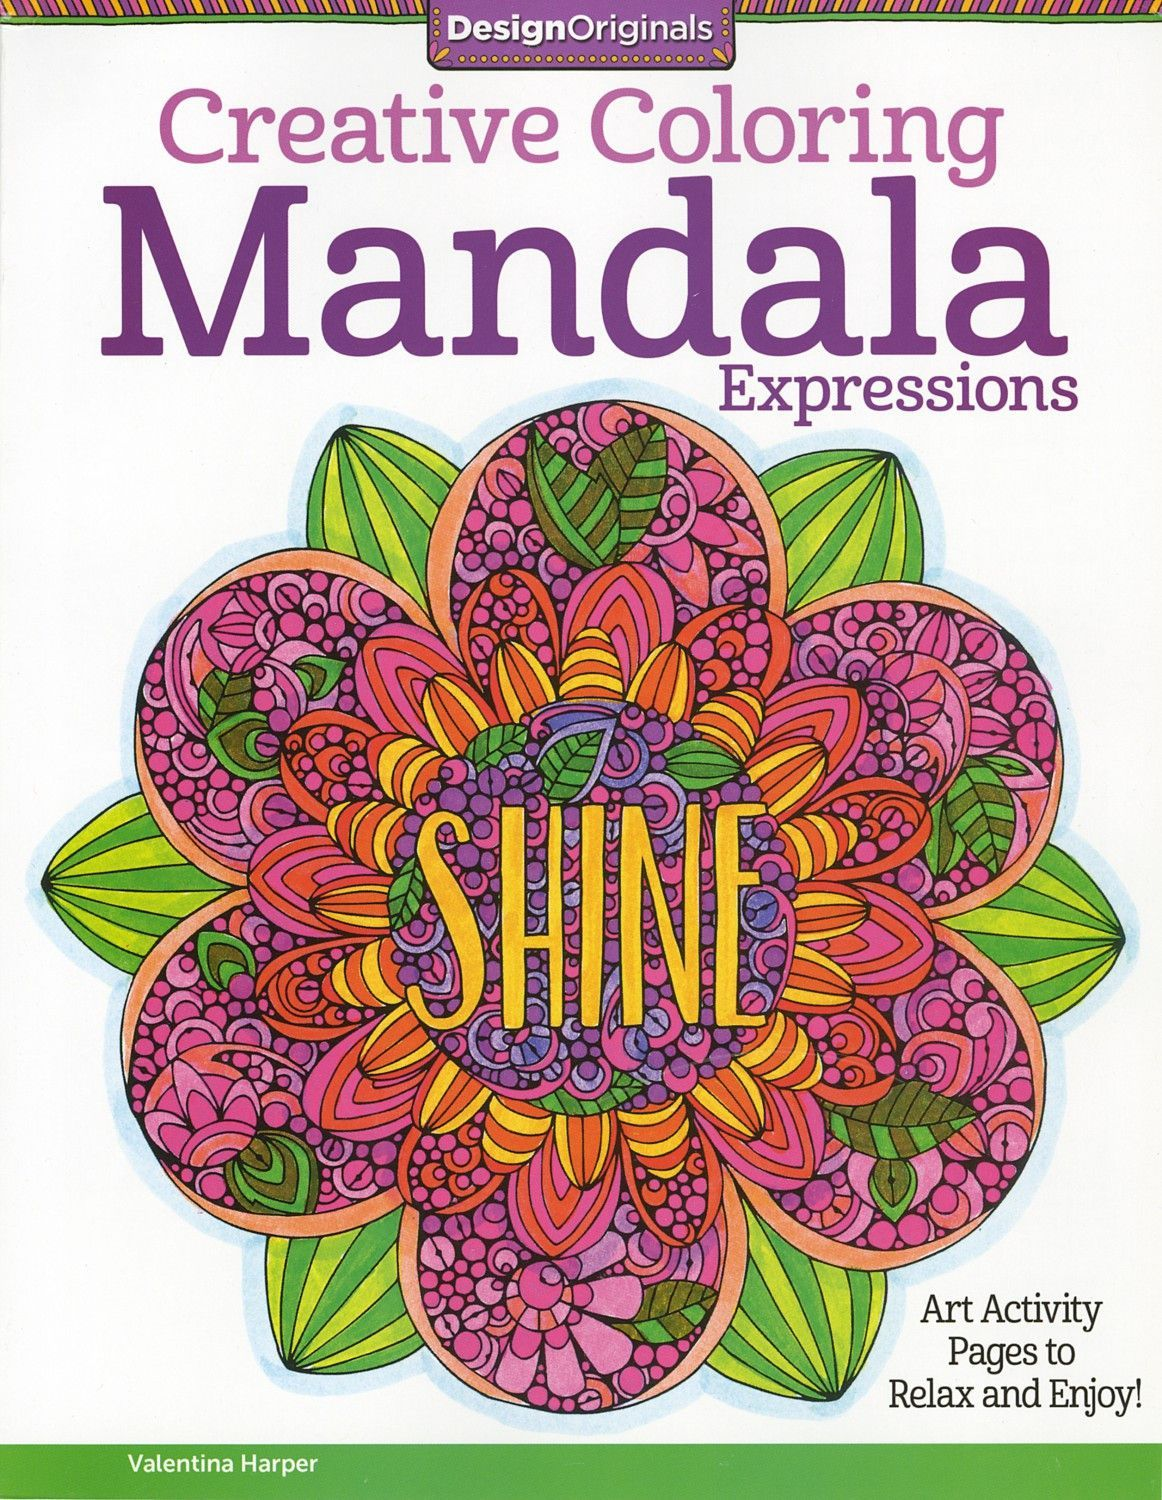 The gorgeous coloring book for grown ups - Creative Coloring Mandala Expressions Adult Coloring And Activity Book Inside This Gorgeous Coloring Book For Grownups Are 30 Ready To Color Art Activities